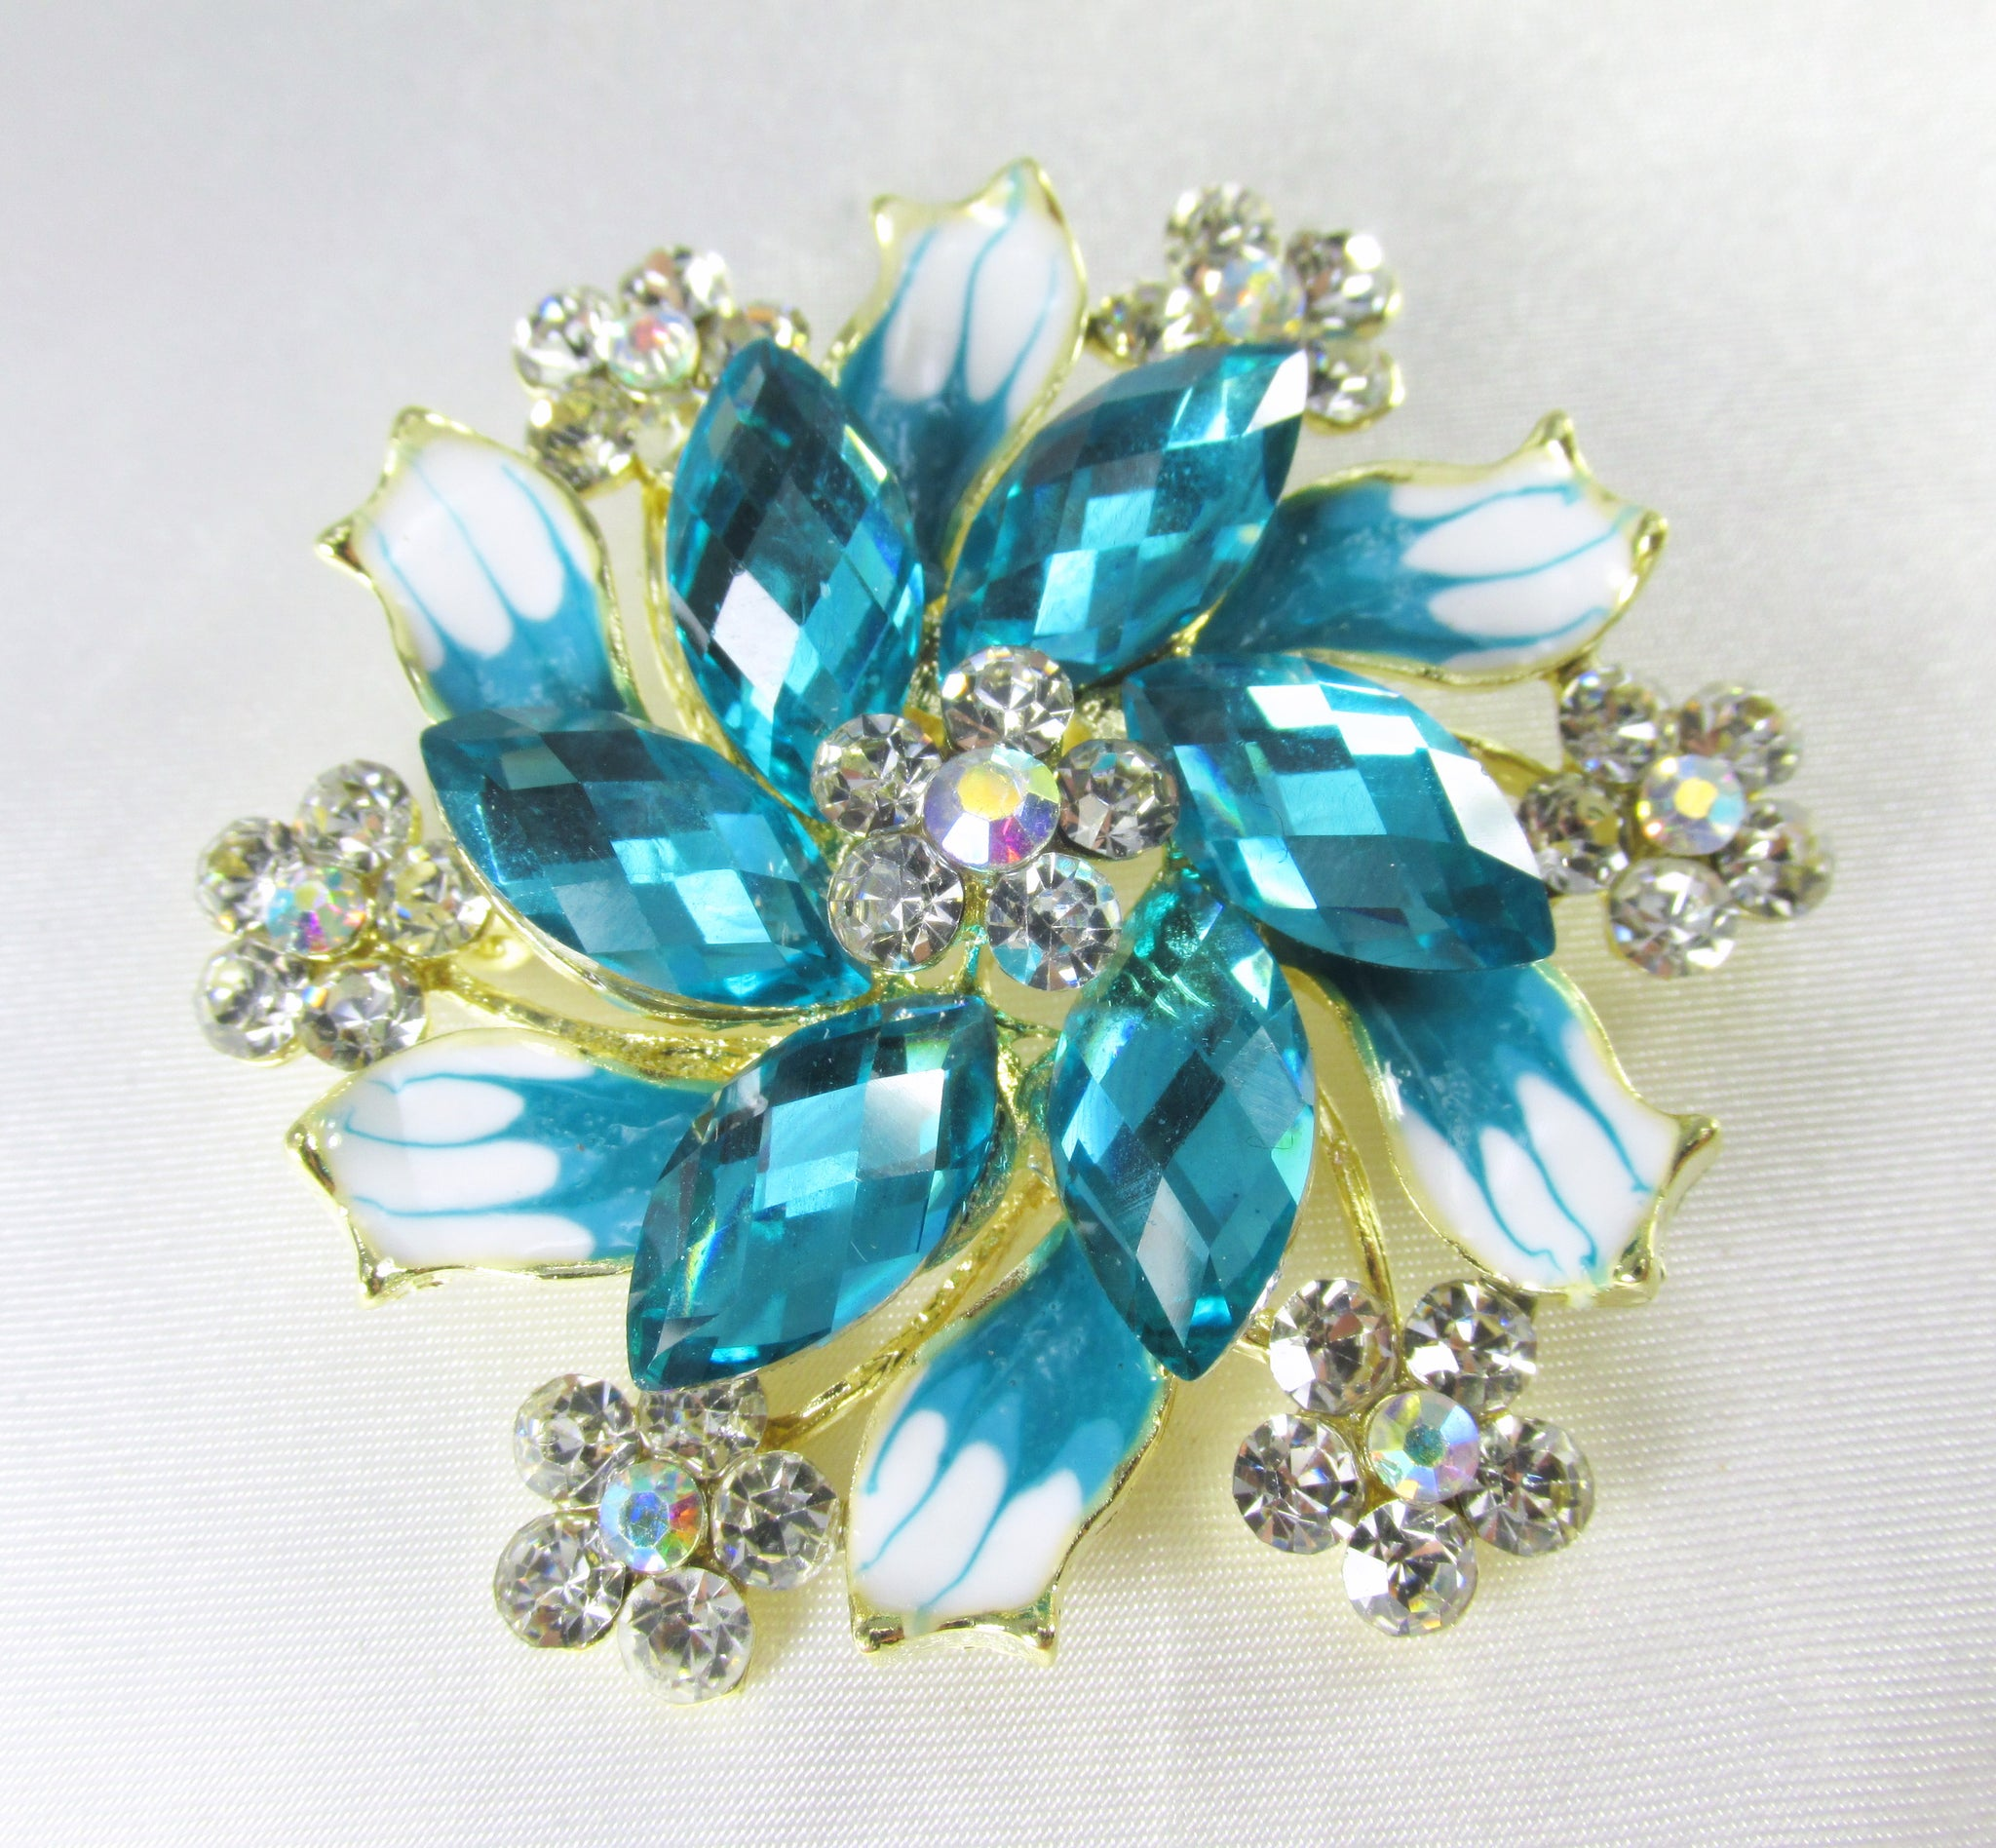 Pinwheel Acrylic and Crystal Flower Brooch in Red, Black, Pink, Gold, Turquoise or Purple Lavender - Odyssey Creations